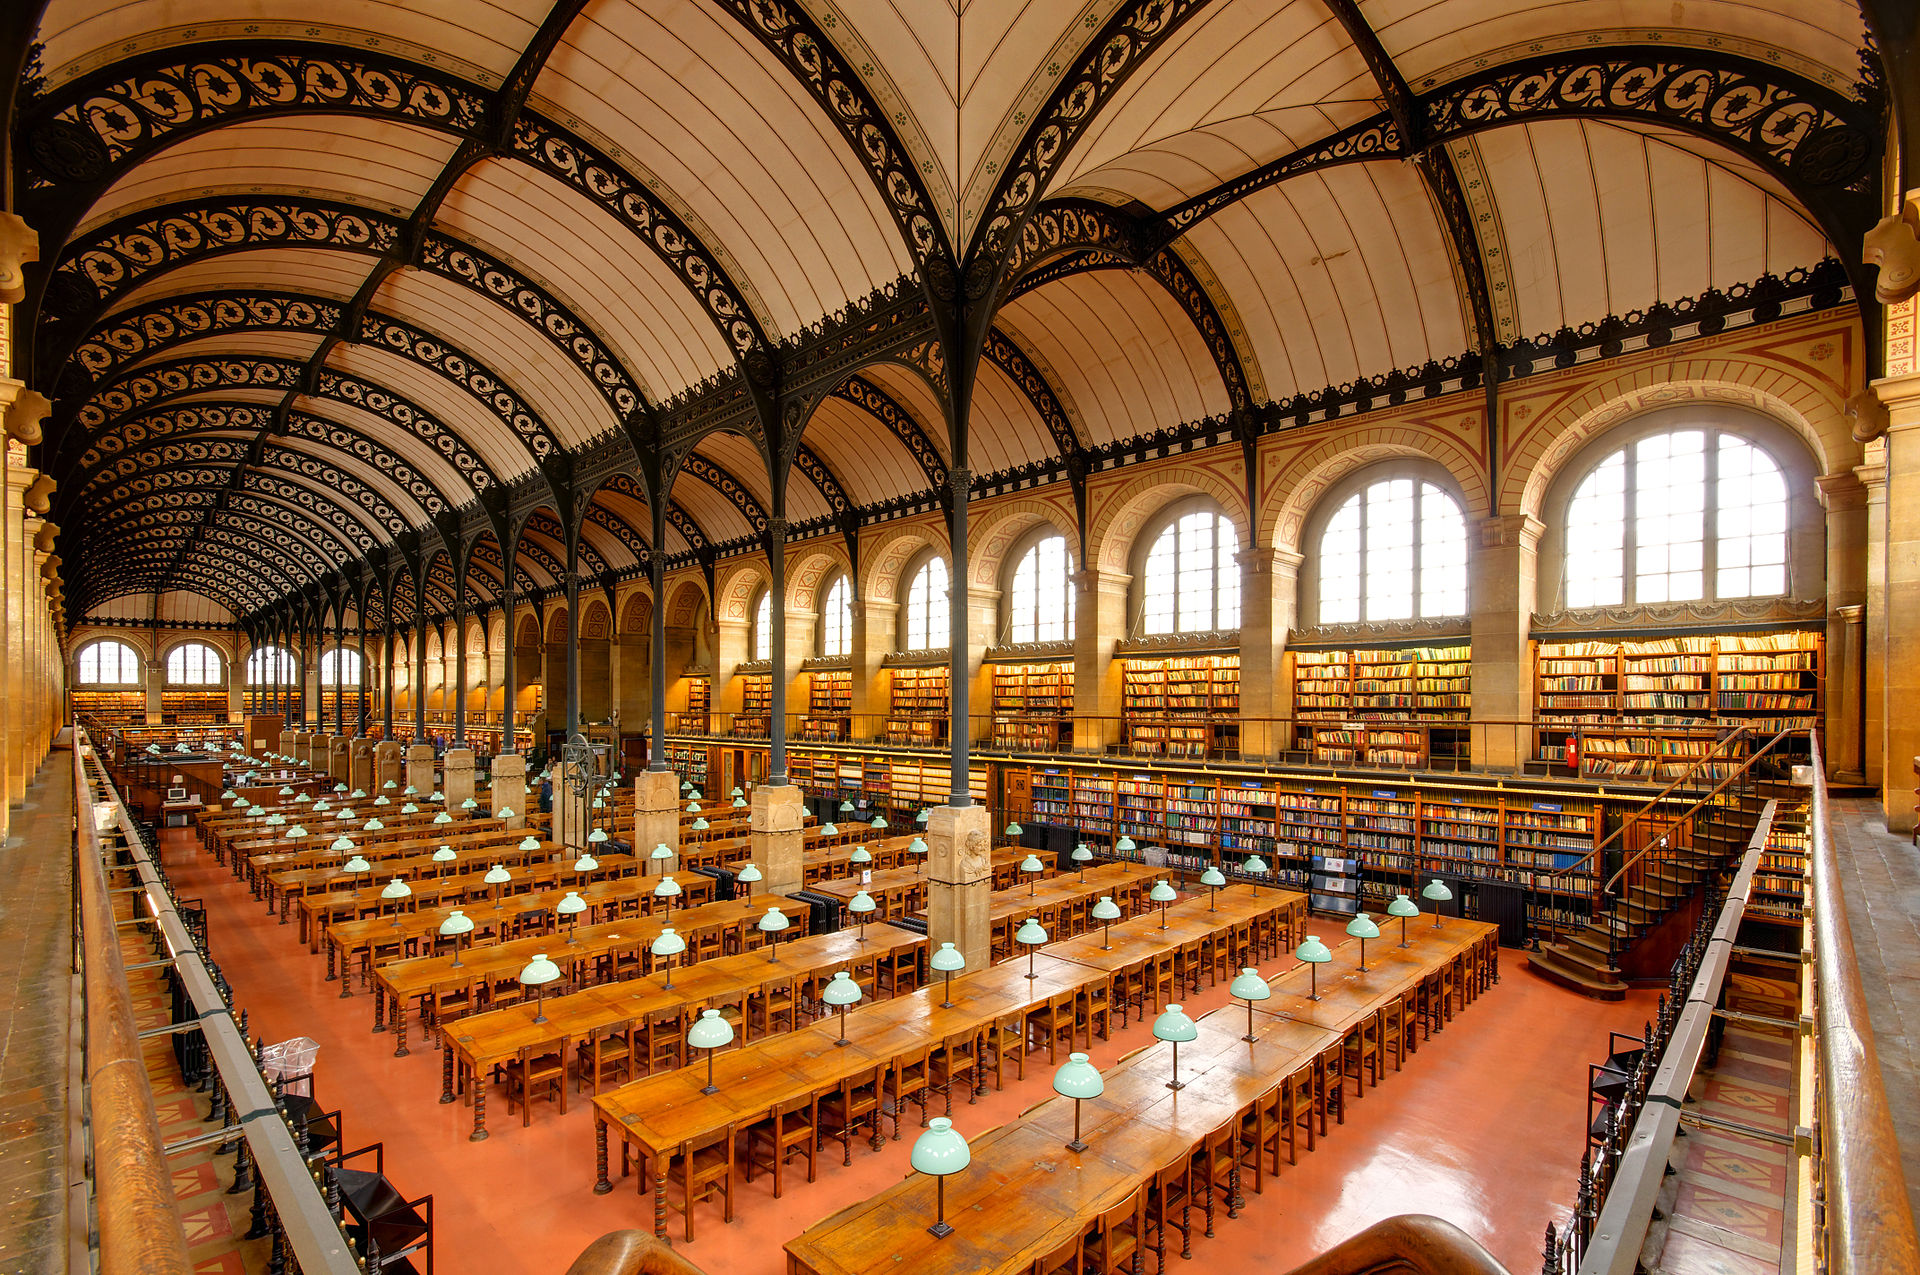 https://upload.wikimedia.org/wikipedia/commons/thumb/7/7c/Salle_de_lecture_Bibliotheque_Sainte-Genevieve_n03.jpg/1920px-Salle_de_lecture_Bibliotheque_Sainte-Genevieve_n03.jpg